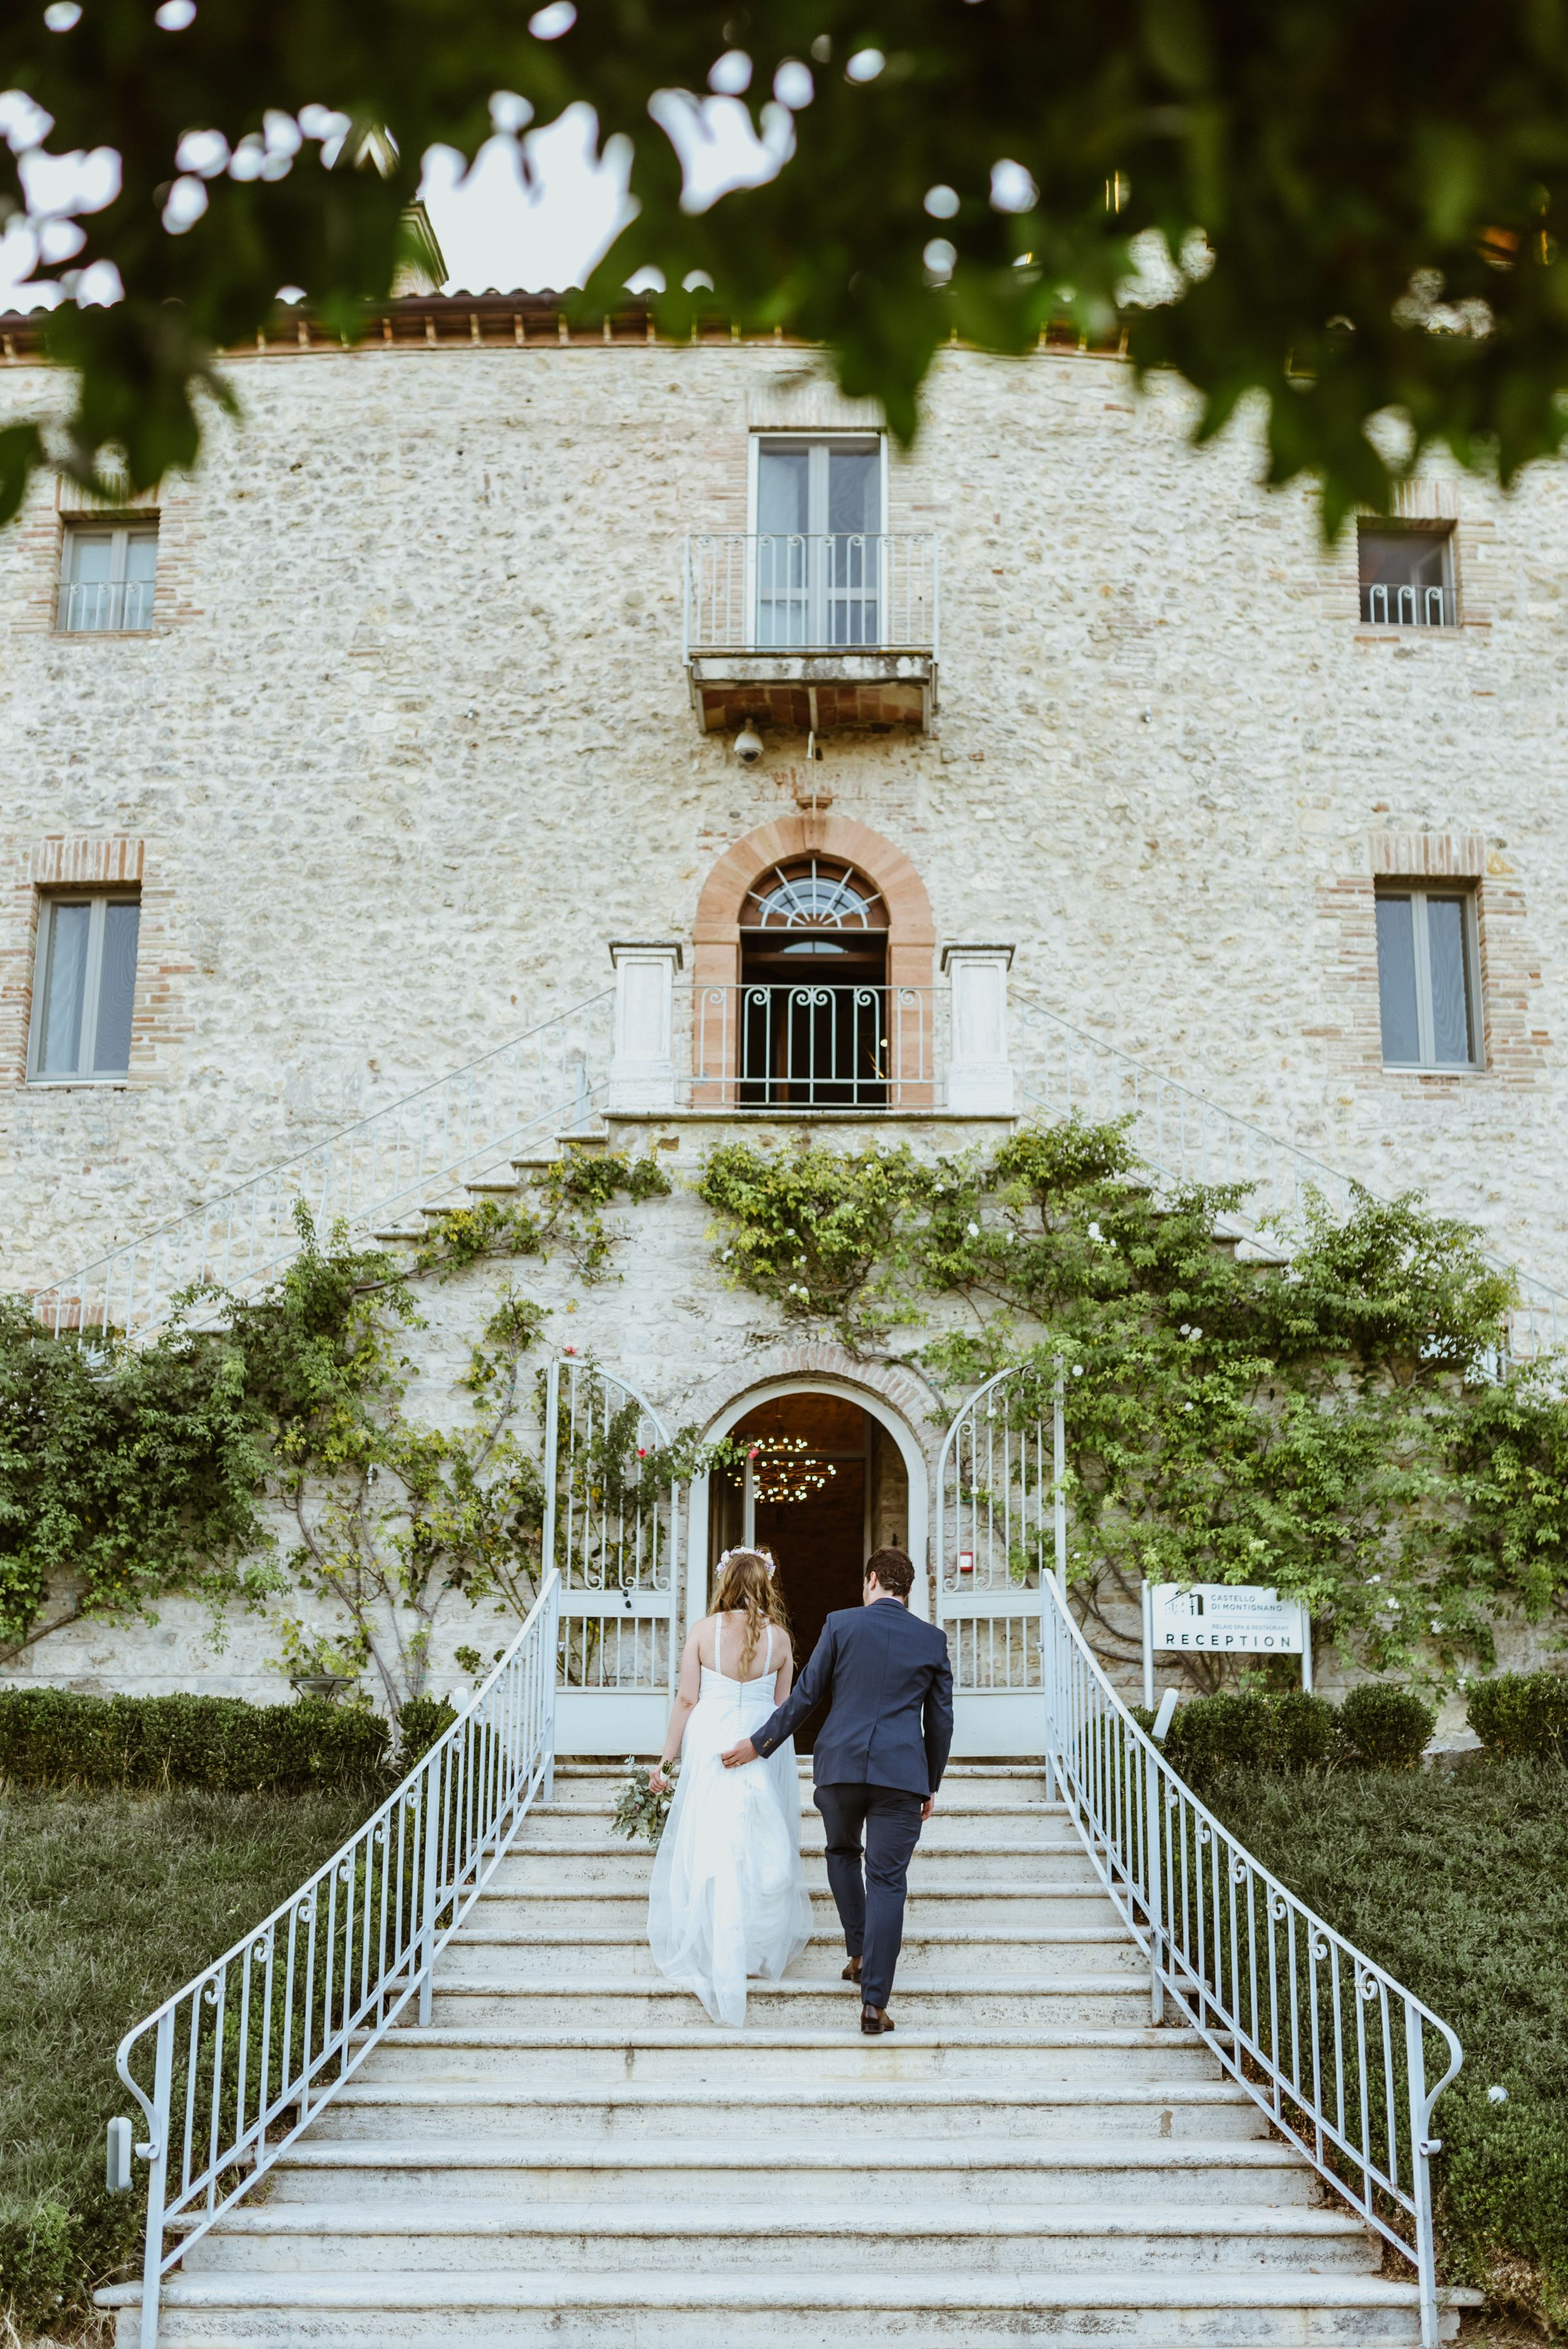 A Castle Wedding In Italy Tuscany In 2020 Destination Wedding Europe Italy Wedding Italian Castle